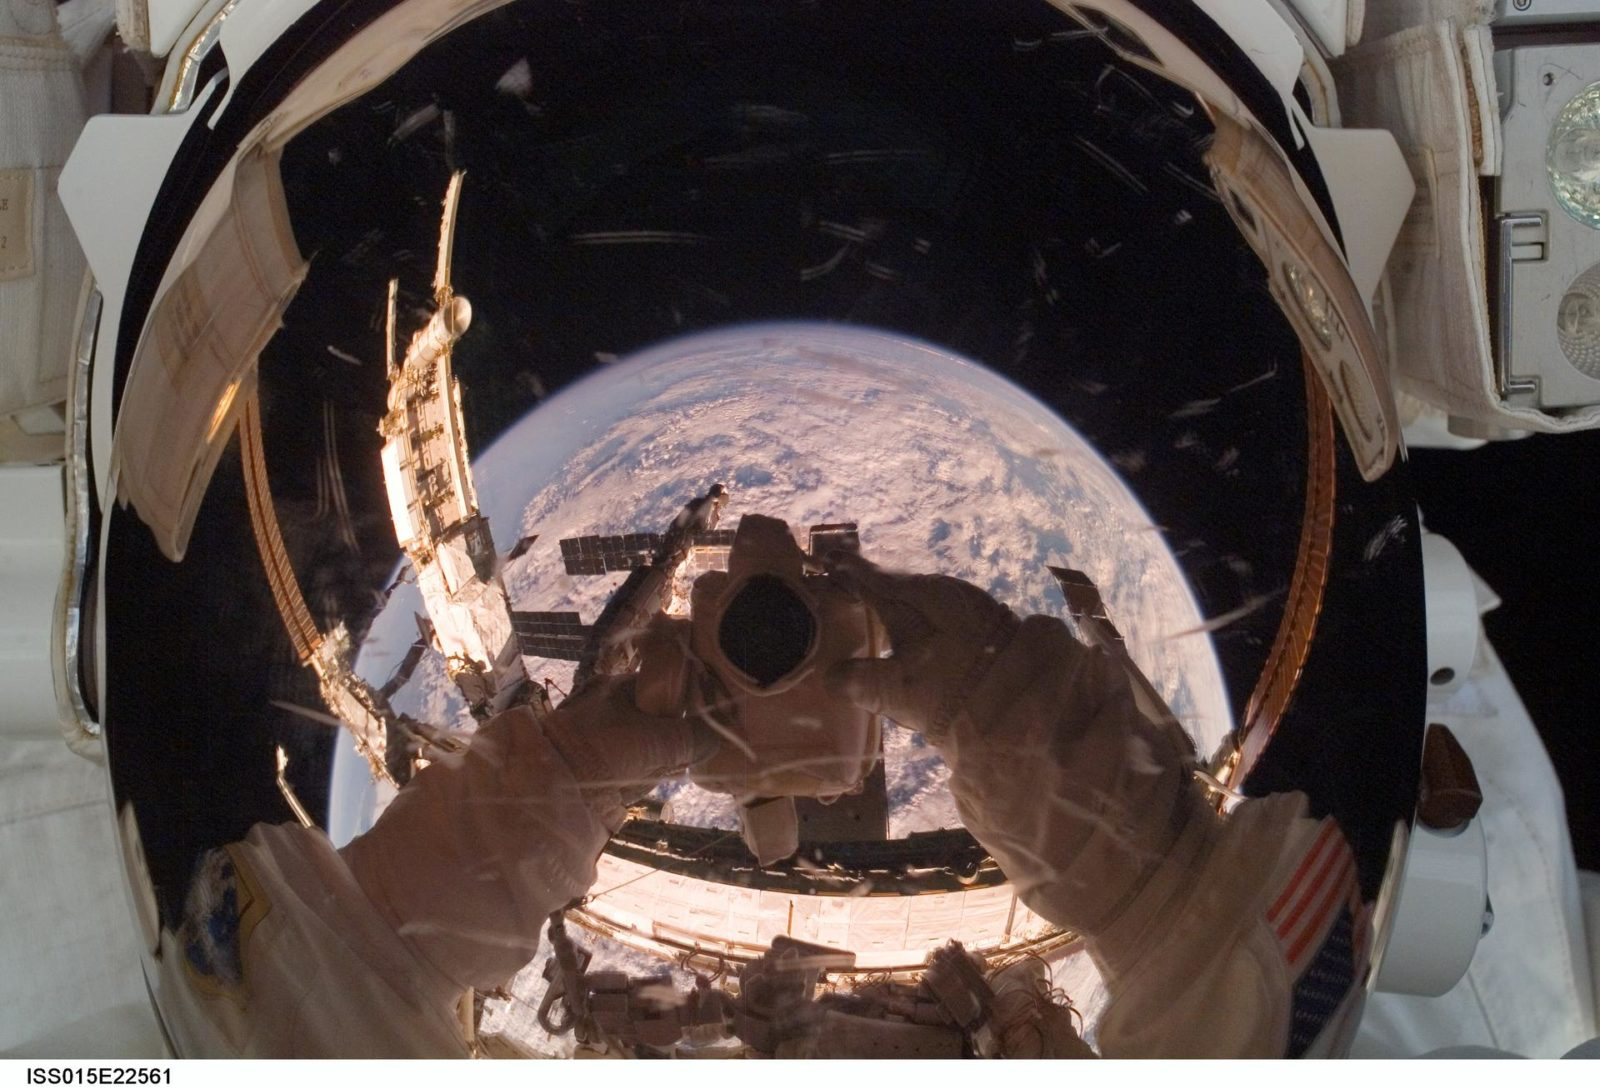 FE Anderson during EVA 3 for Expedition 15 / STS-118 Joint Operations